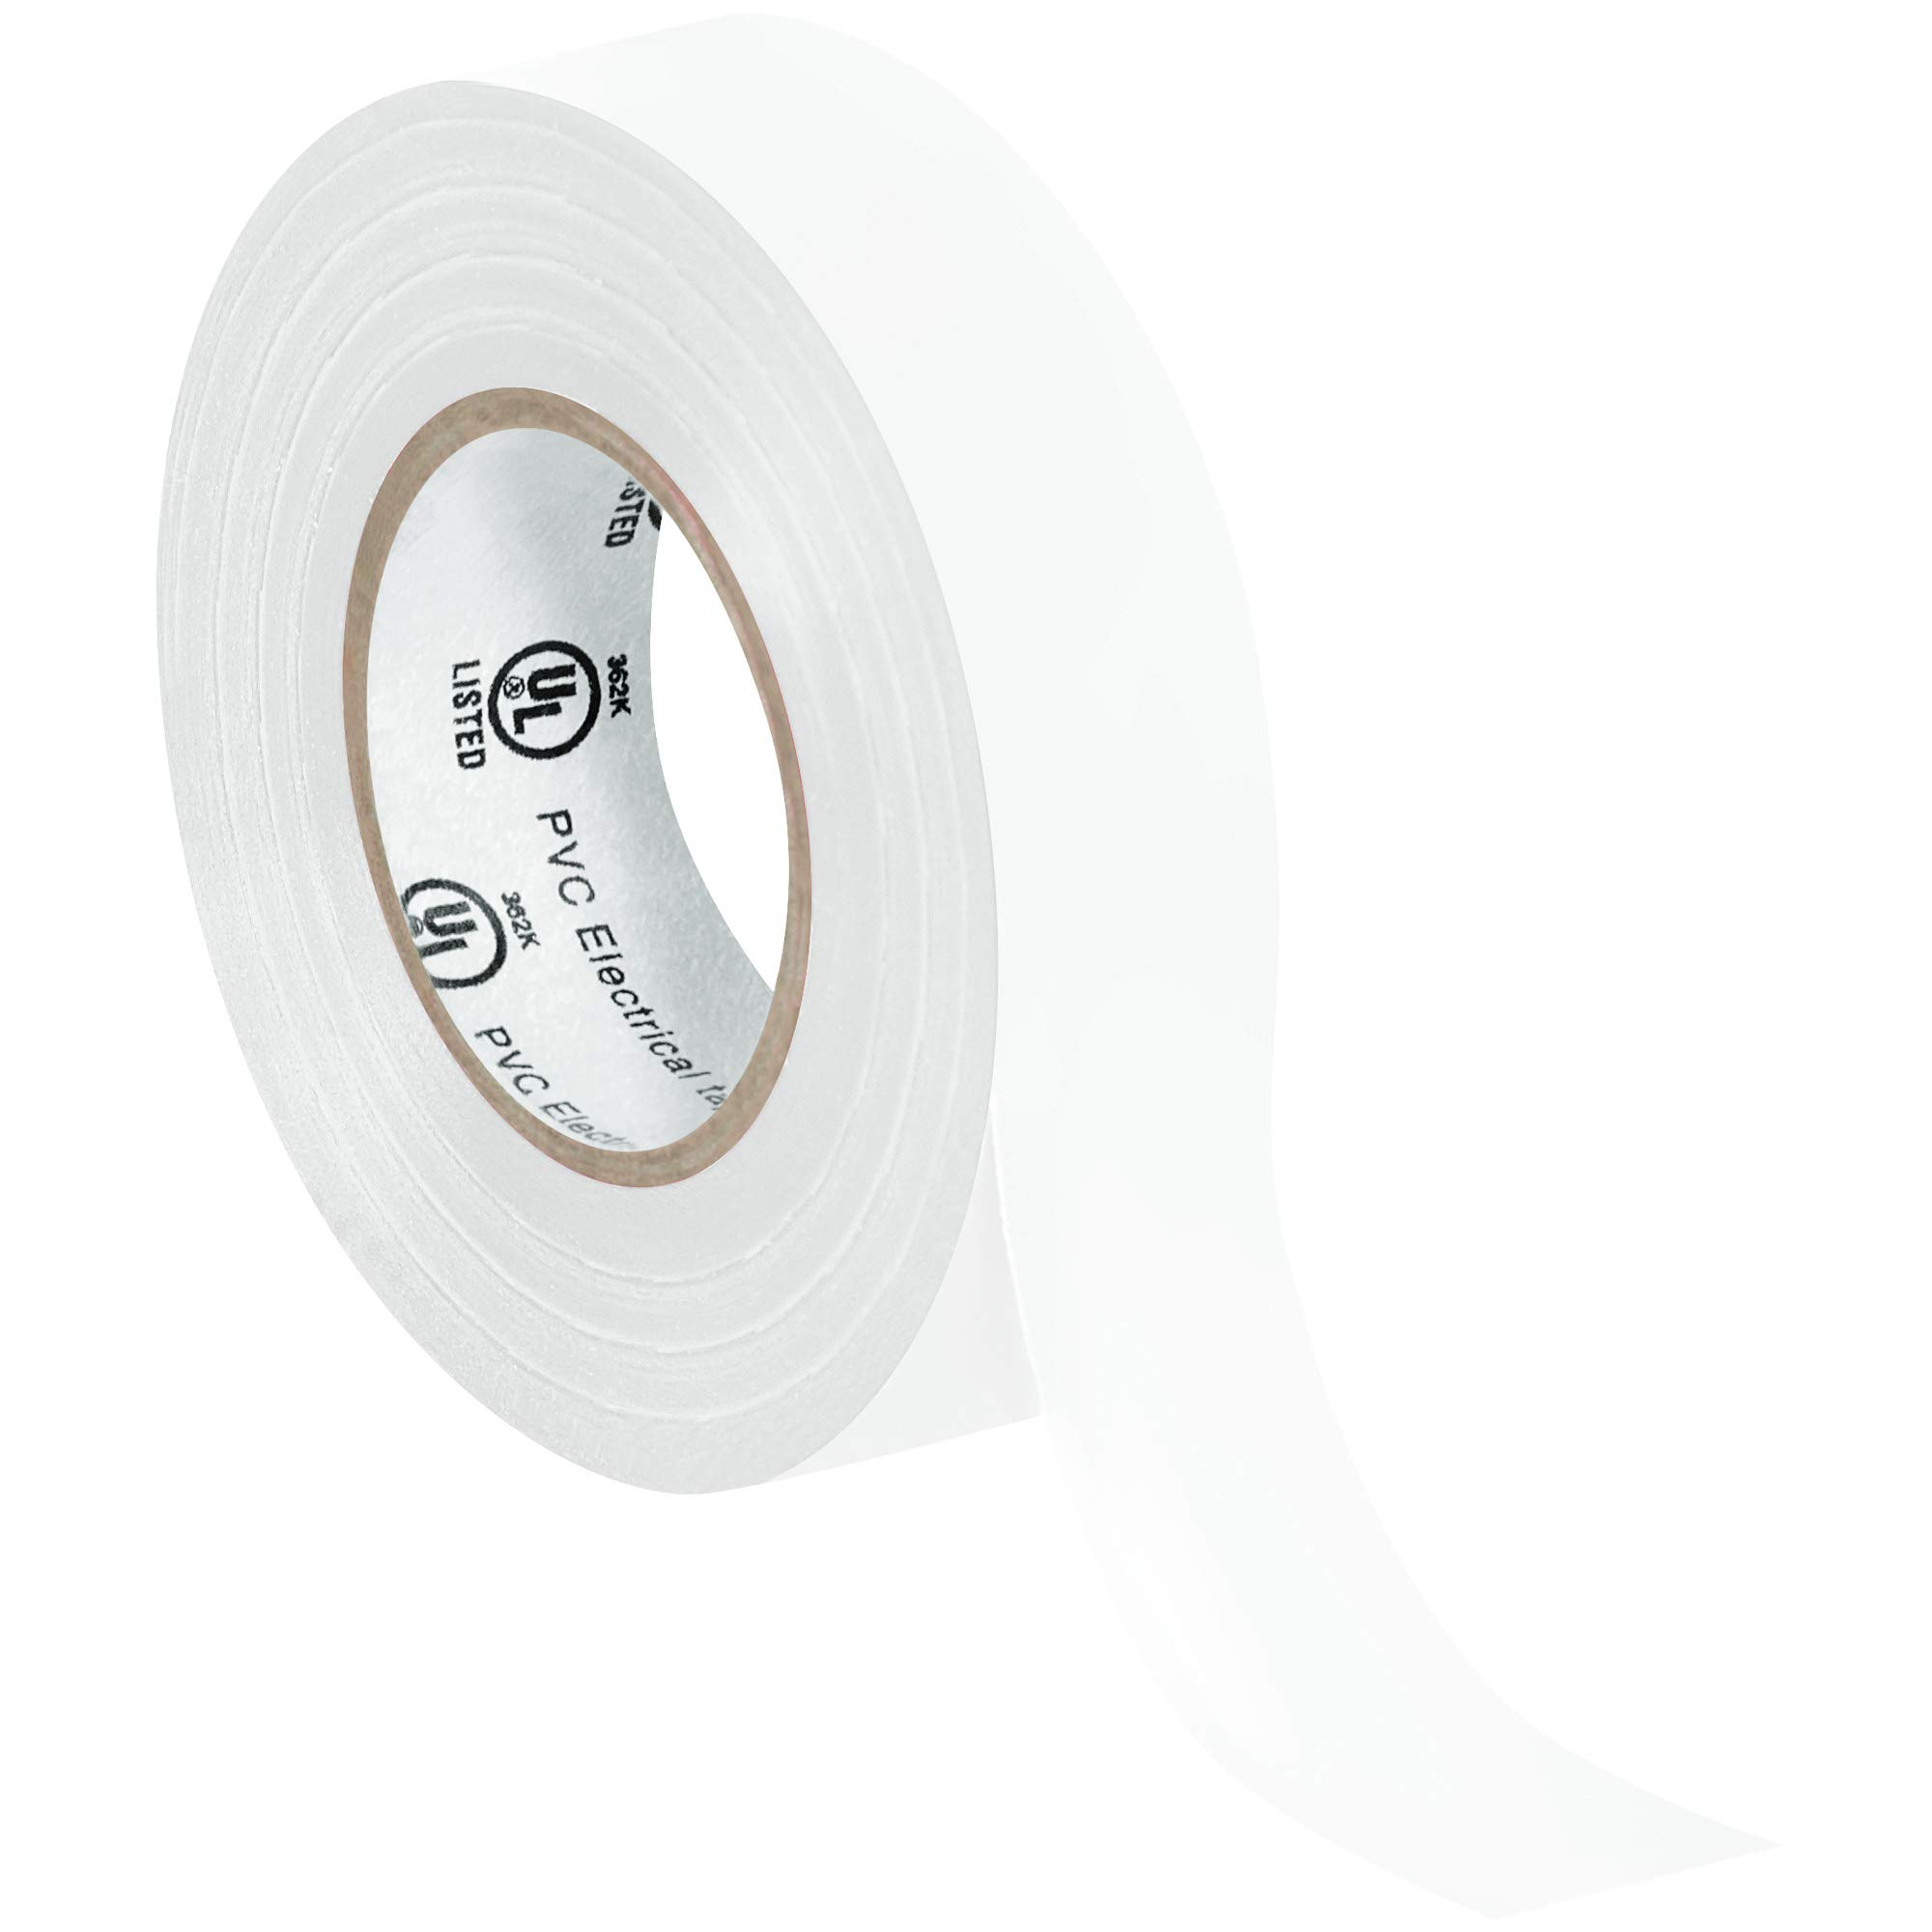 Electrical Tape, 7.0 Mil, 3/4''x 20 yds, White, 200/Case